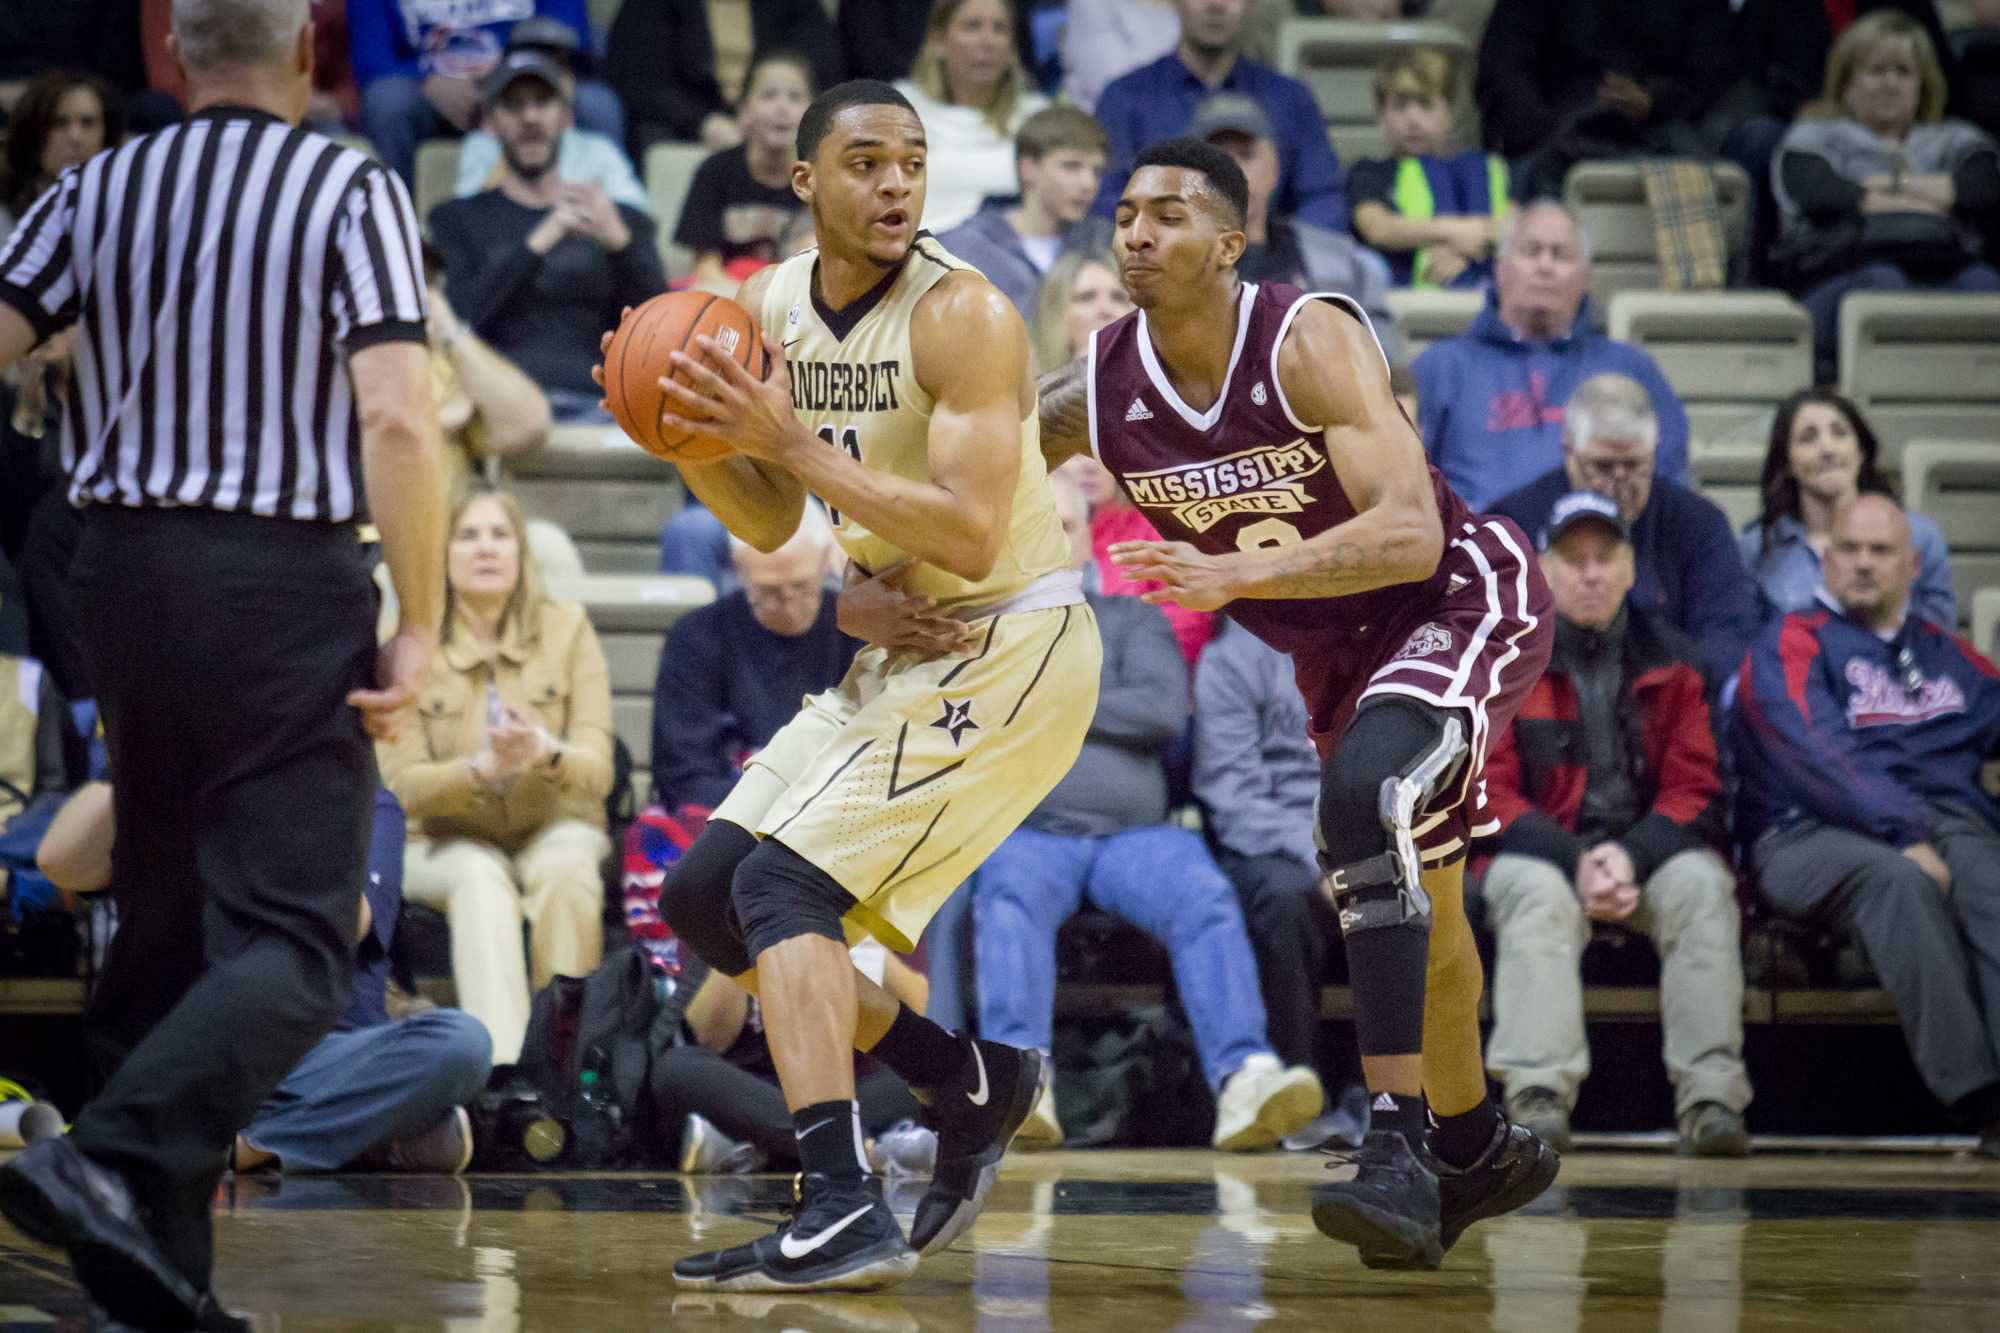 February 25th, 2017 – Jeff Roberson (11) with the ball during the Commodores' 77-48 win against Mississippi State Saturday afternoon in Memorial Gym.